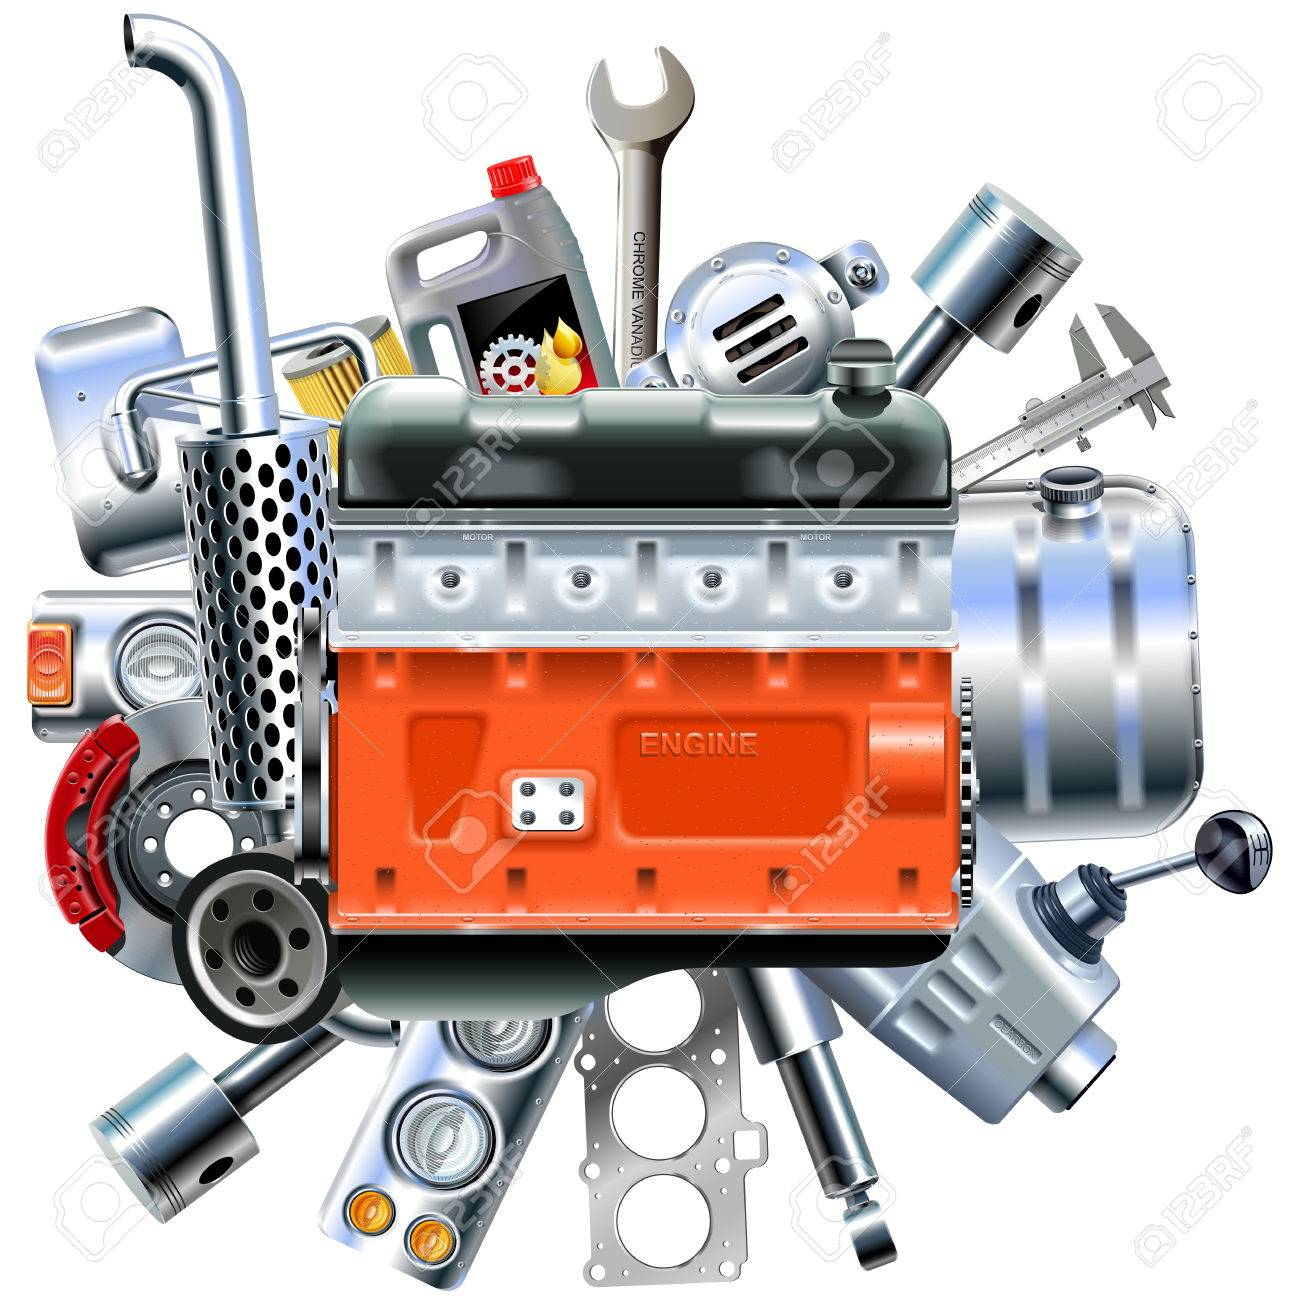 Vector Engine with Truck Spares isolated on white background - 82525554